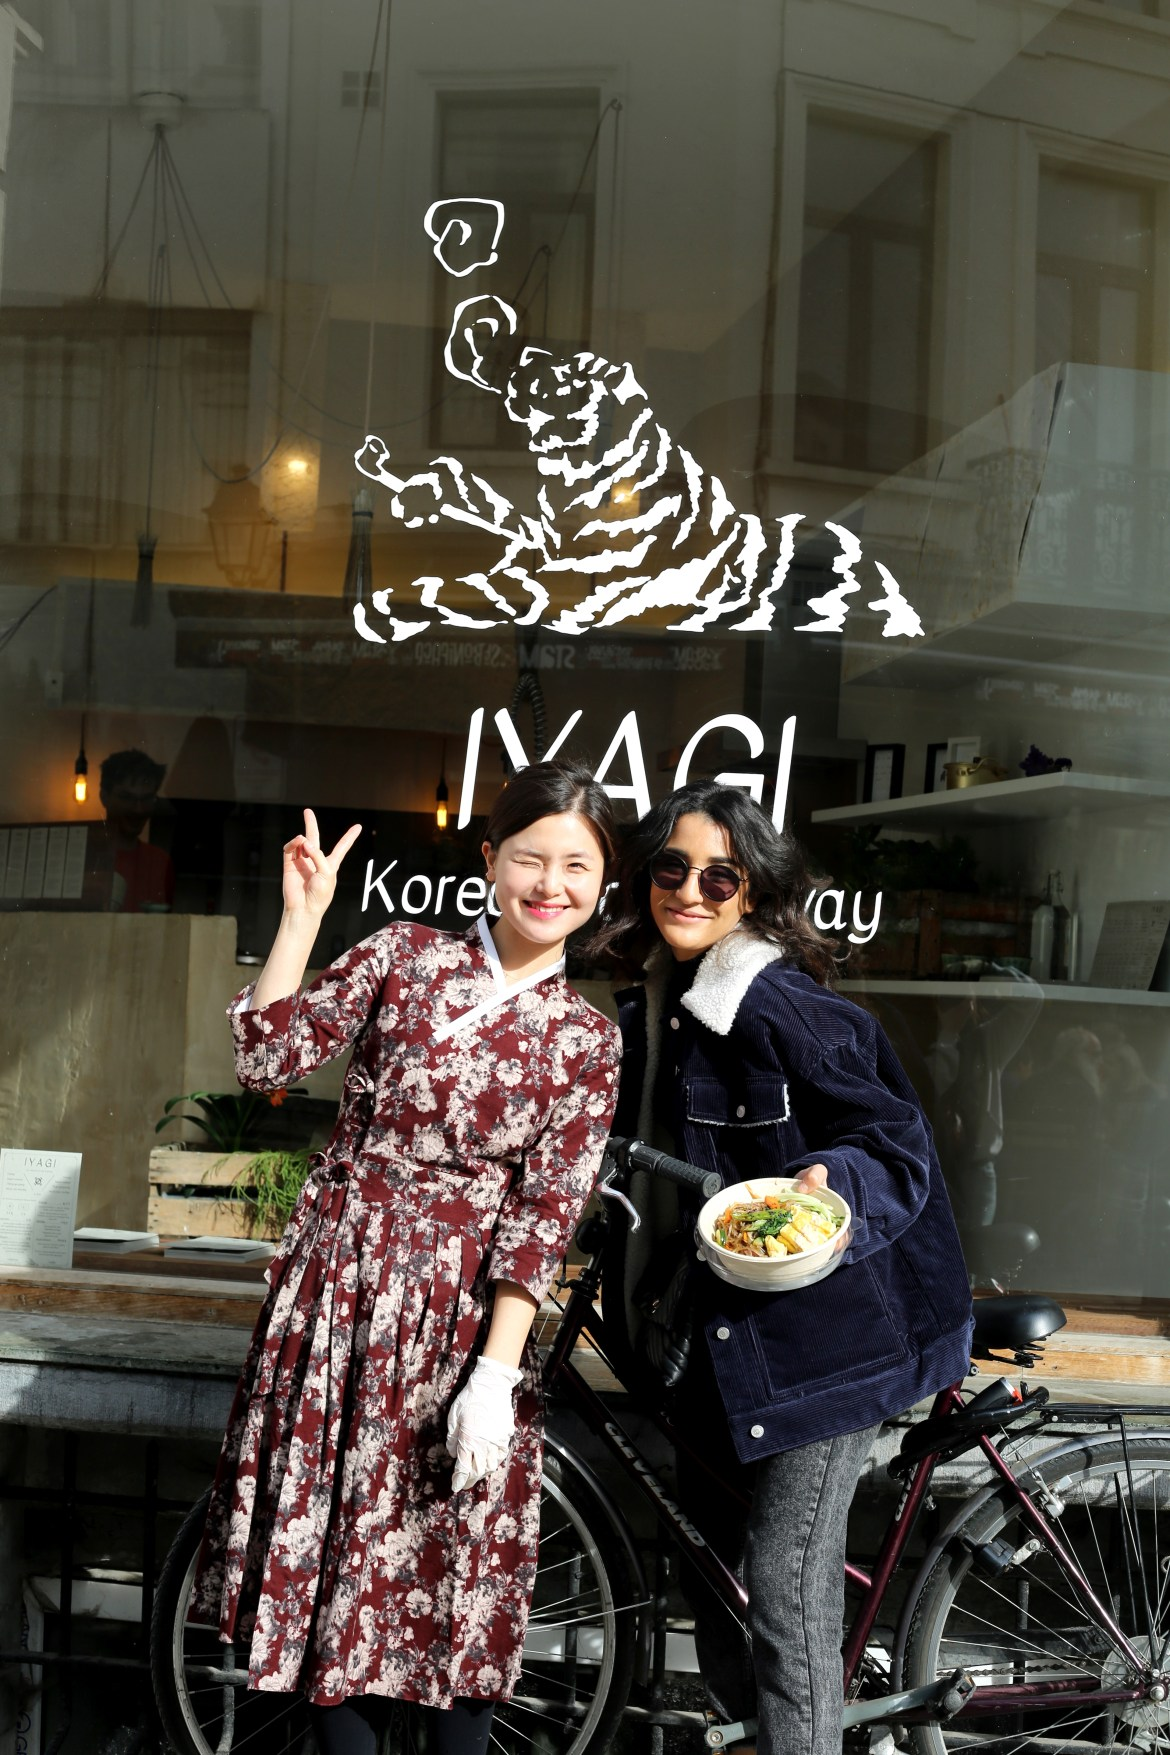 Iyagi, Korean take away, Bruxelles - come-back Lallasmind